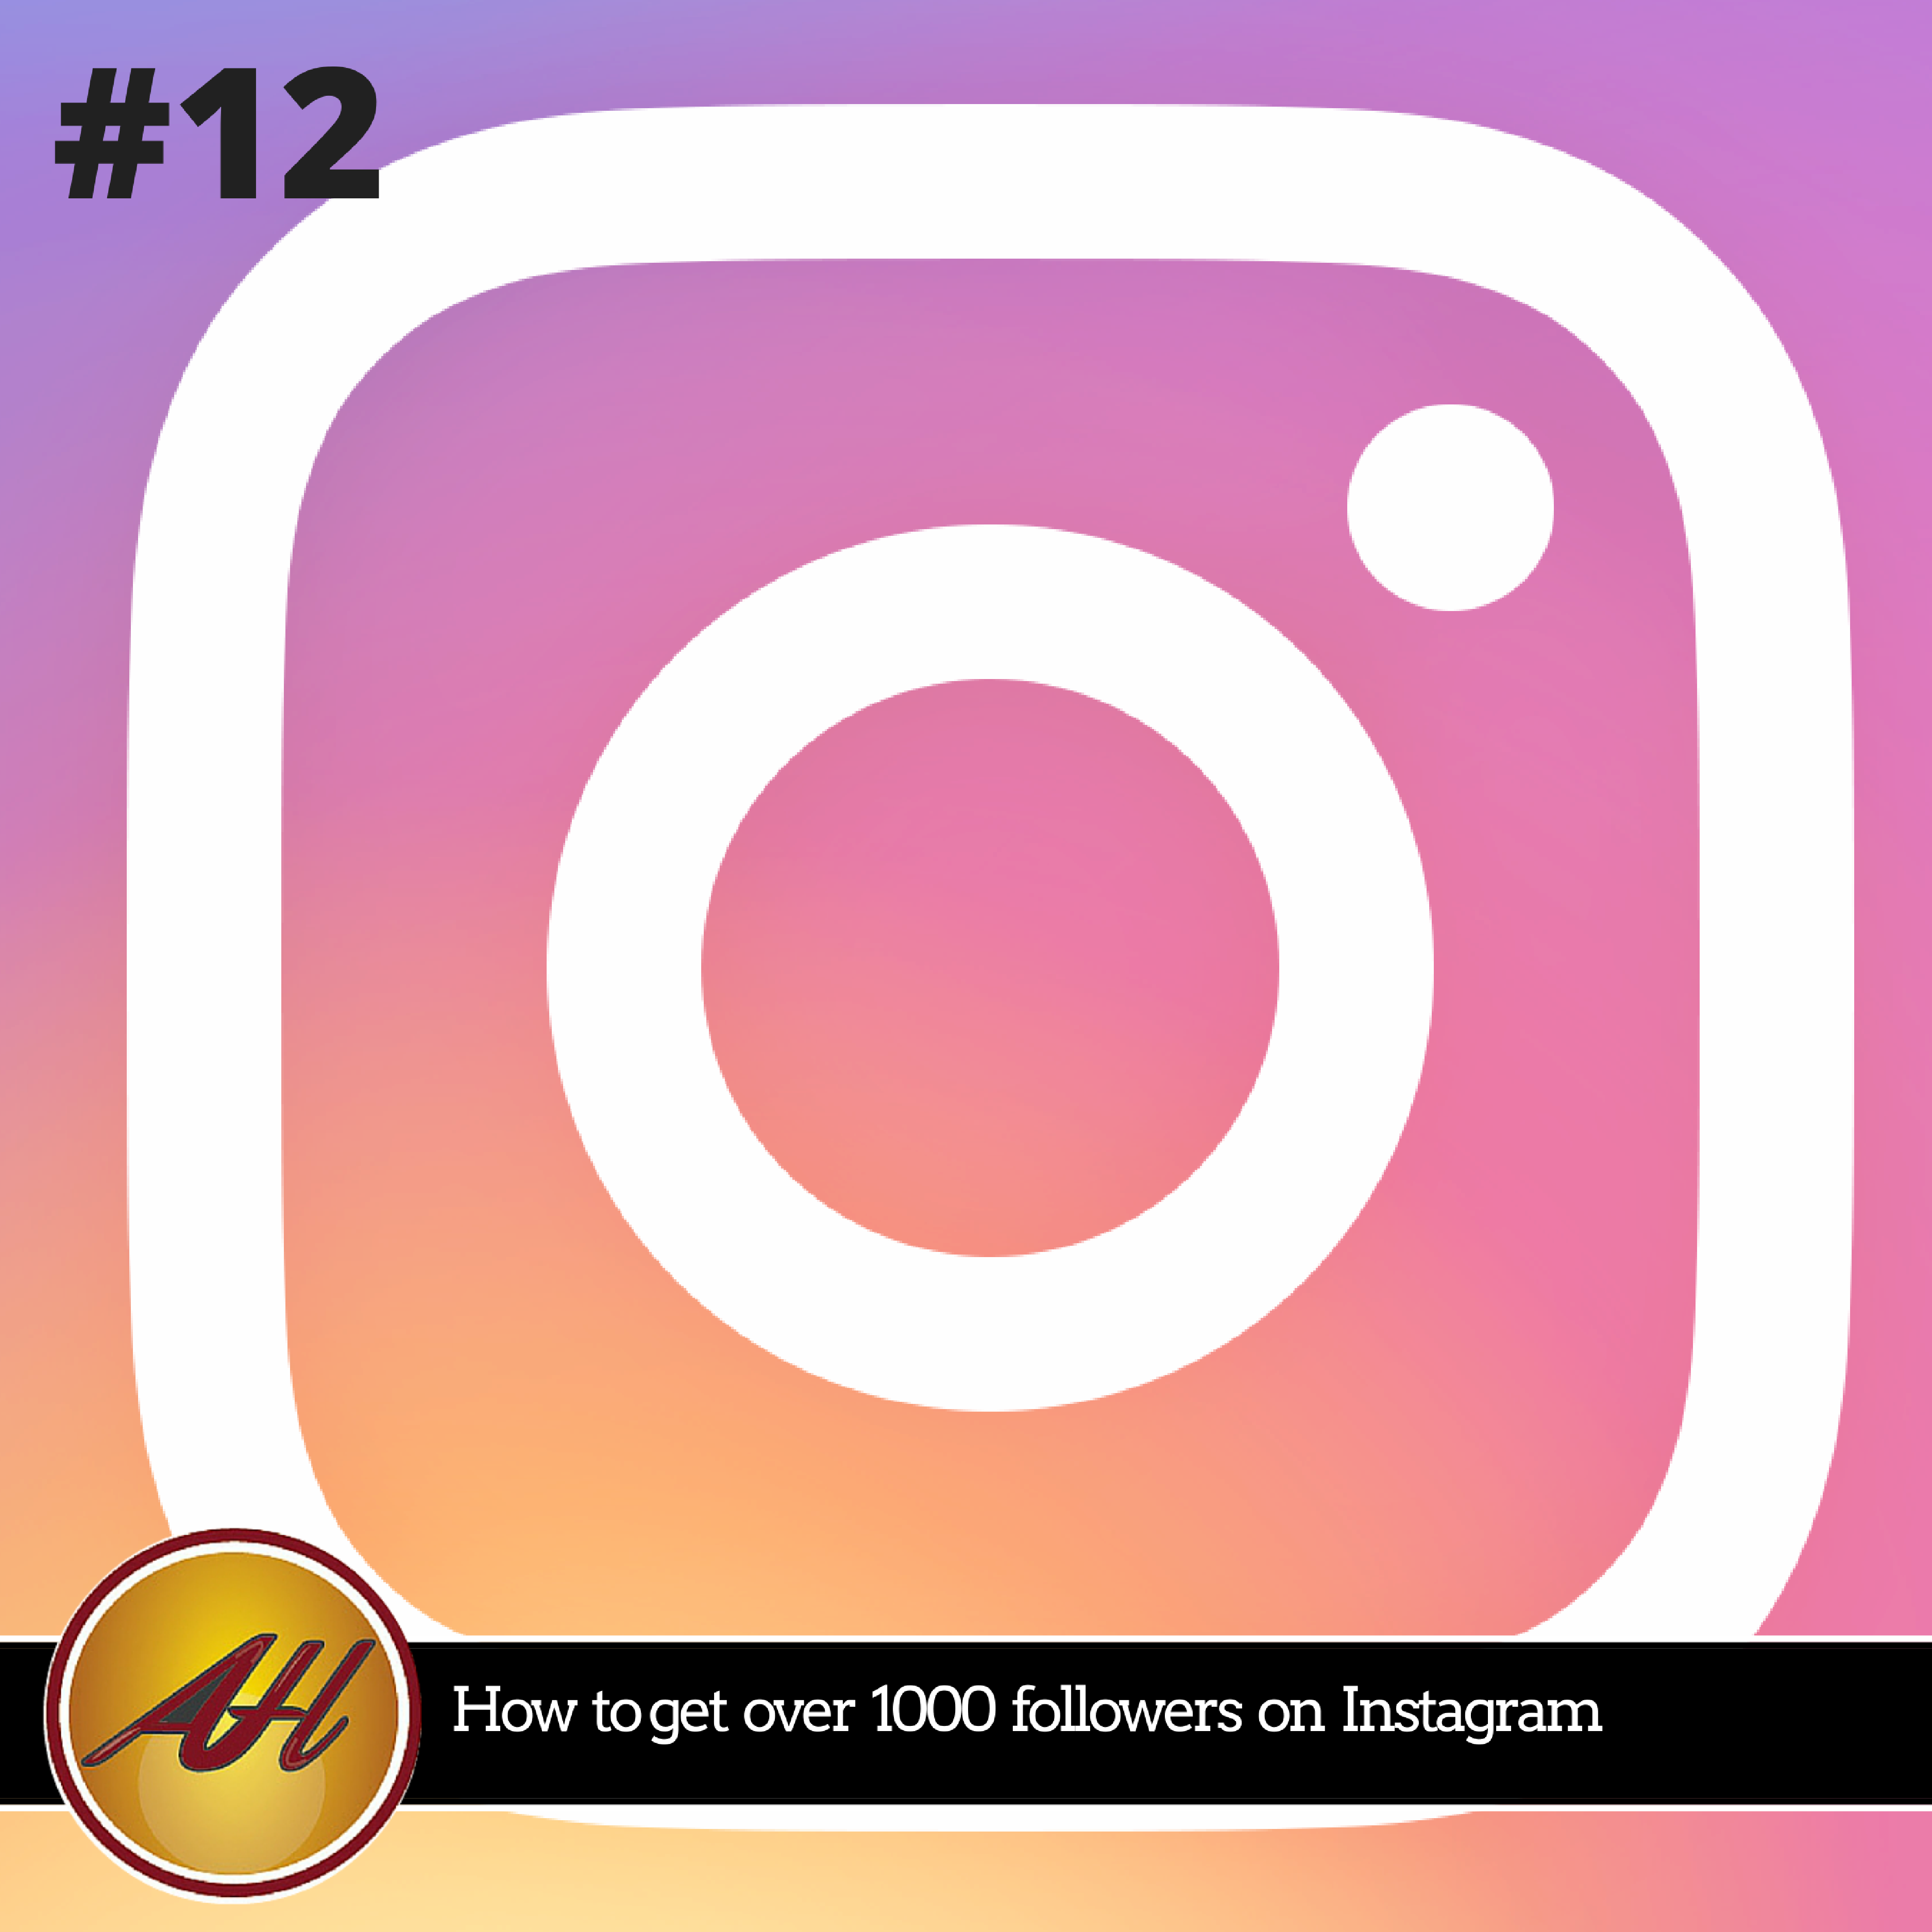 Episode 12 How to get over 1000 followers on Instagram by Amanda Hoffmann